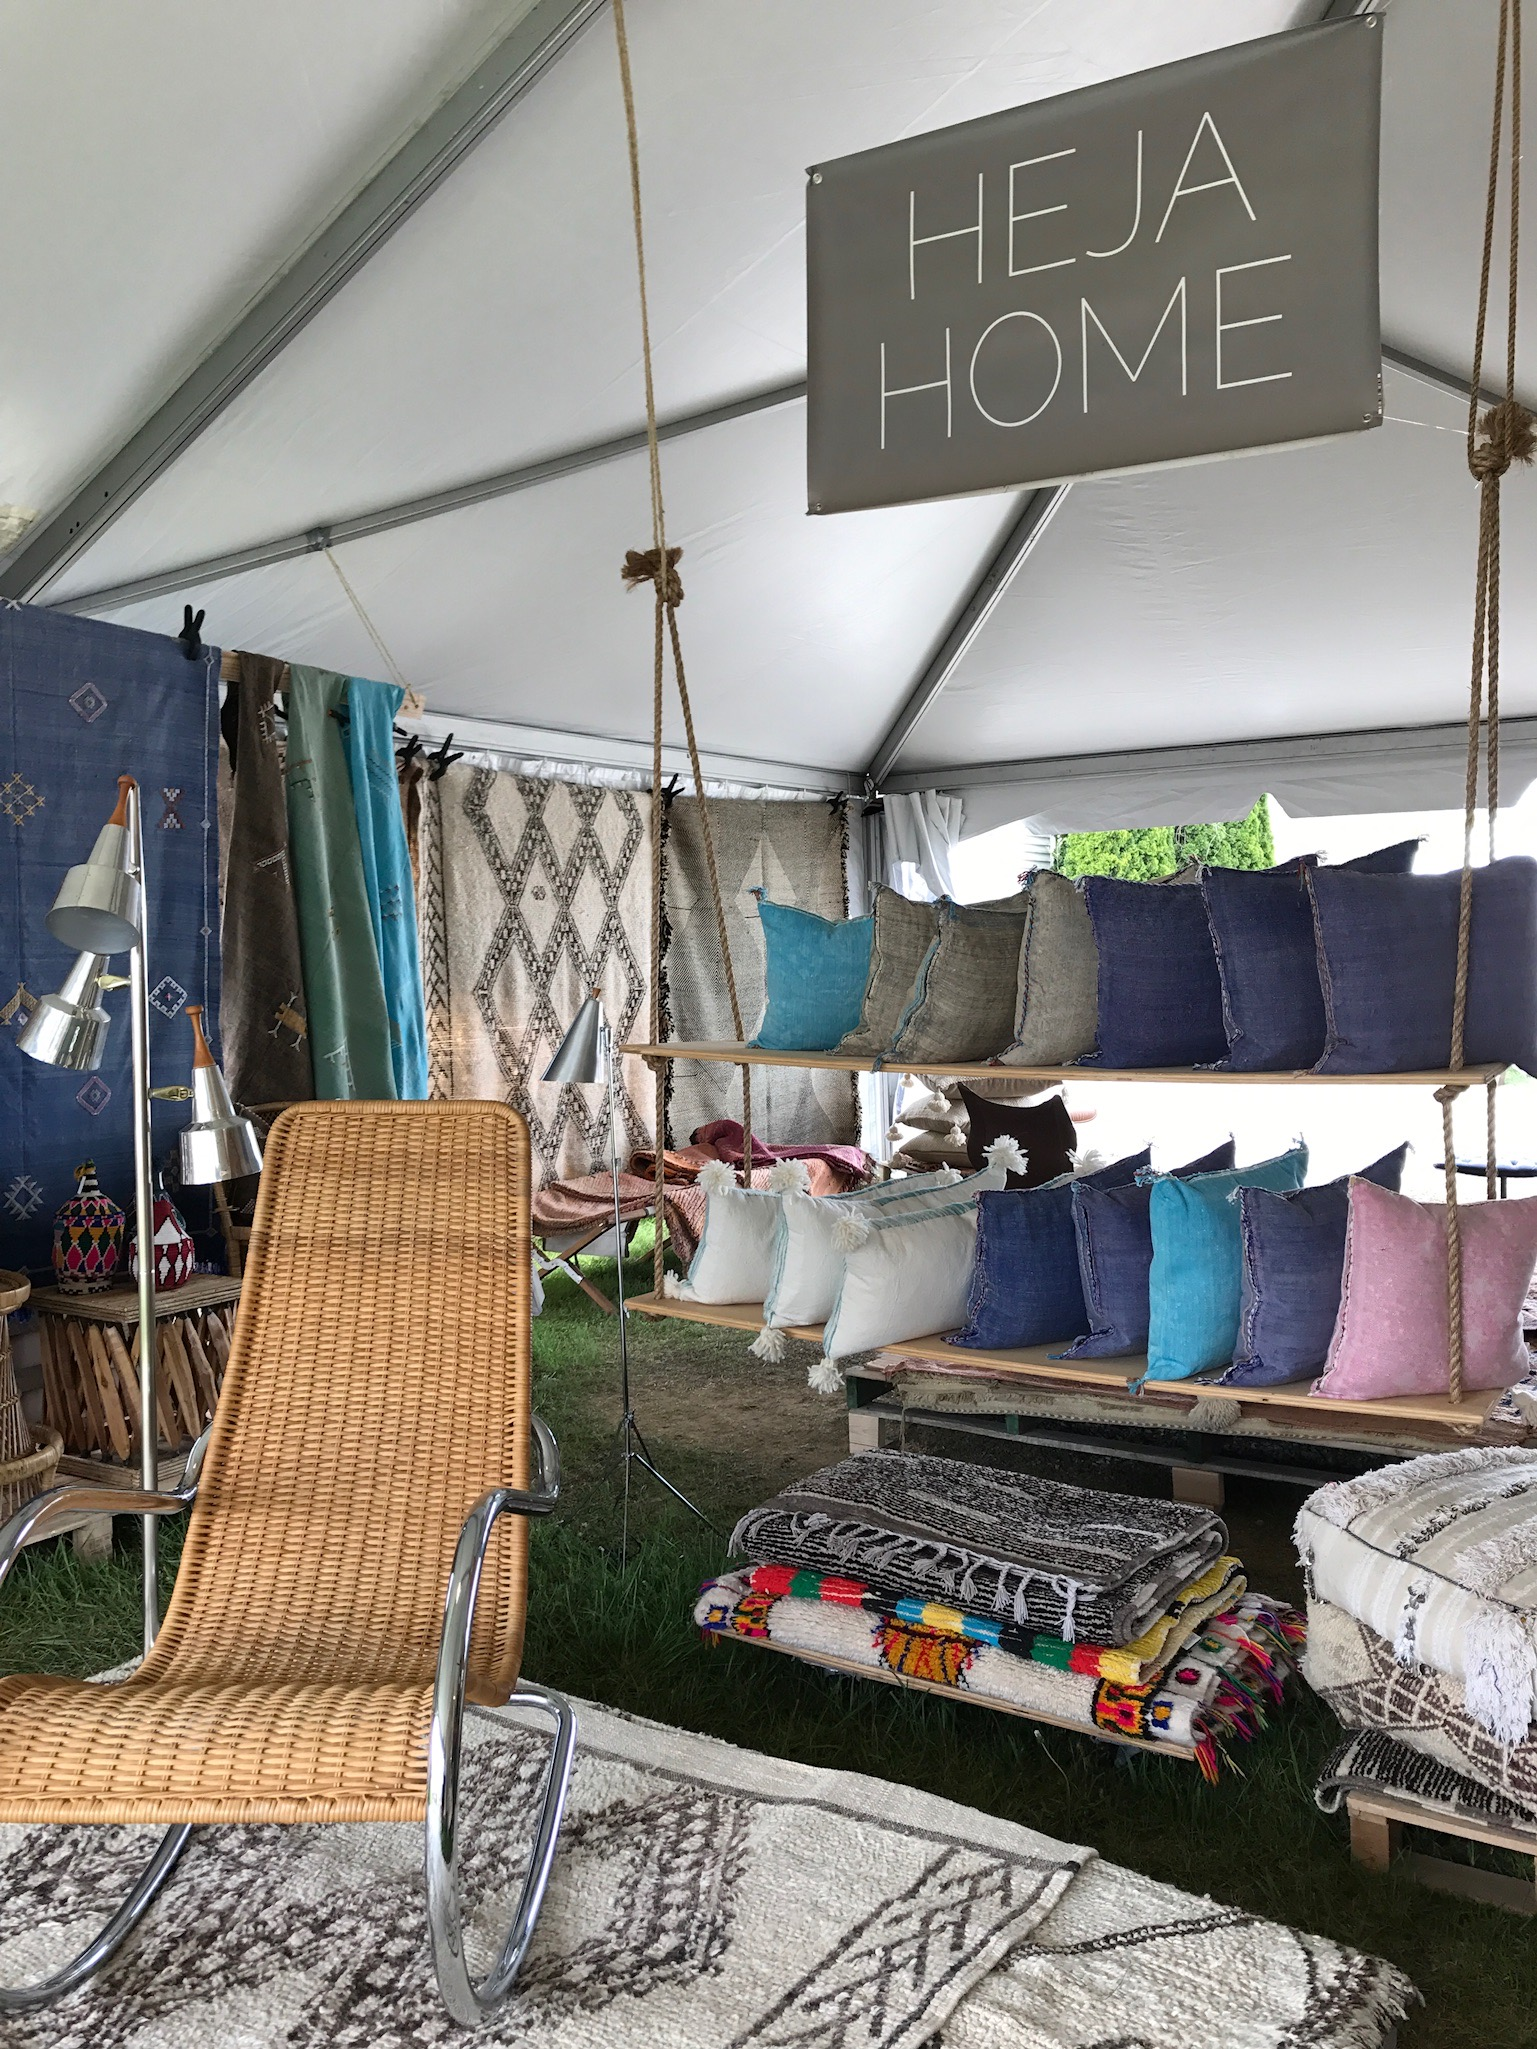 Heja Home  is always one of our favorite booths. Their pilllows are colorful and cozy and their rugs are just ok I guess. JOKES they are amazing.